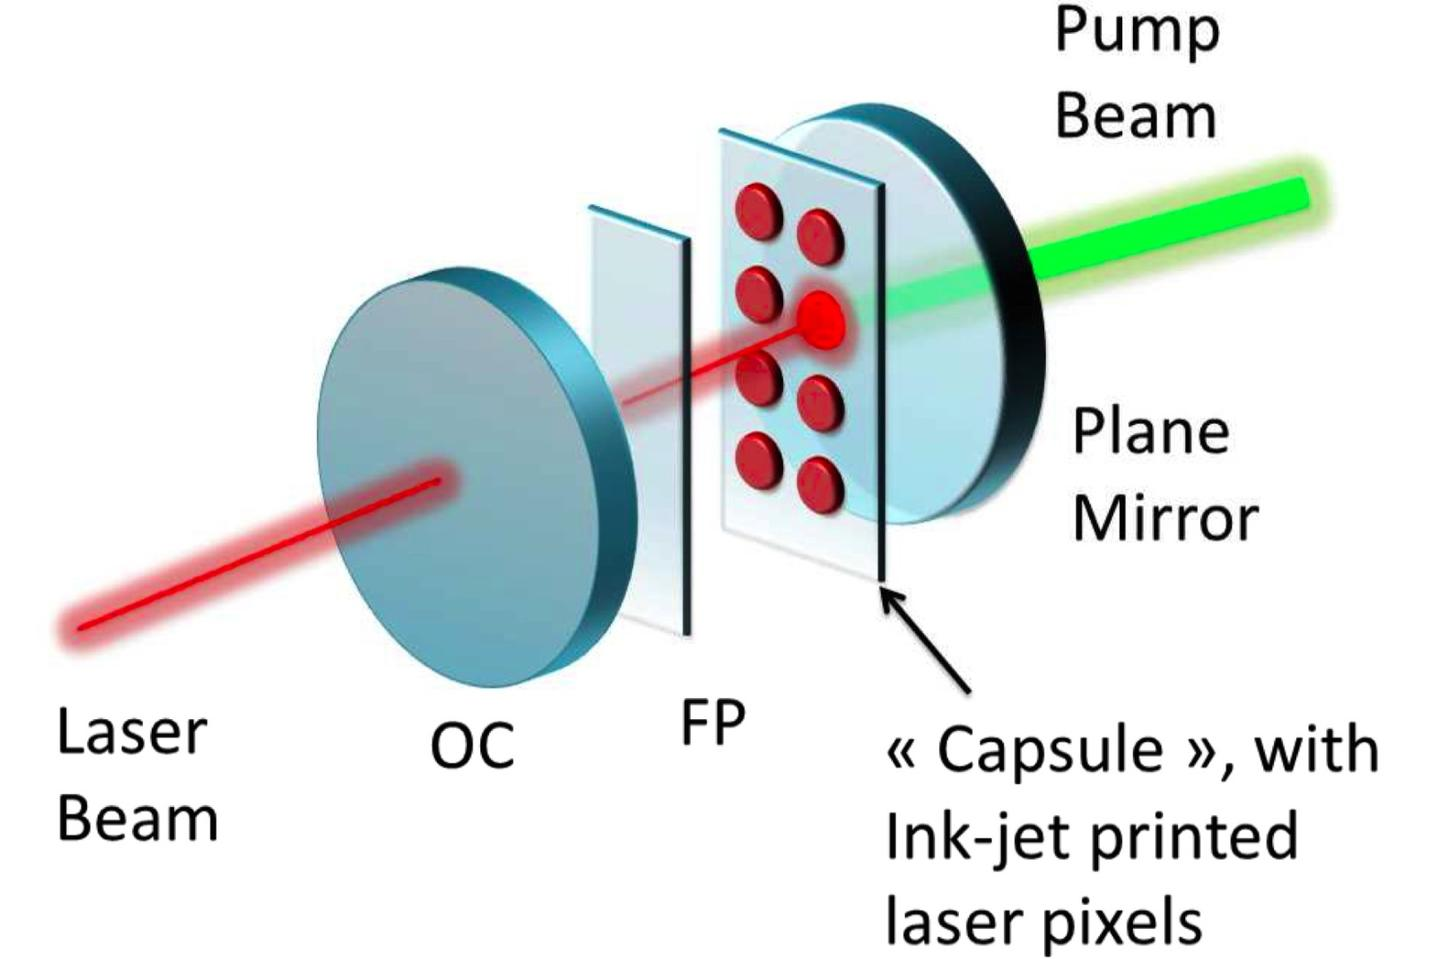 A diagram of an organic laser, incorporating one of the replaceable lasing capsules